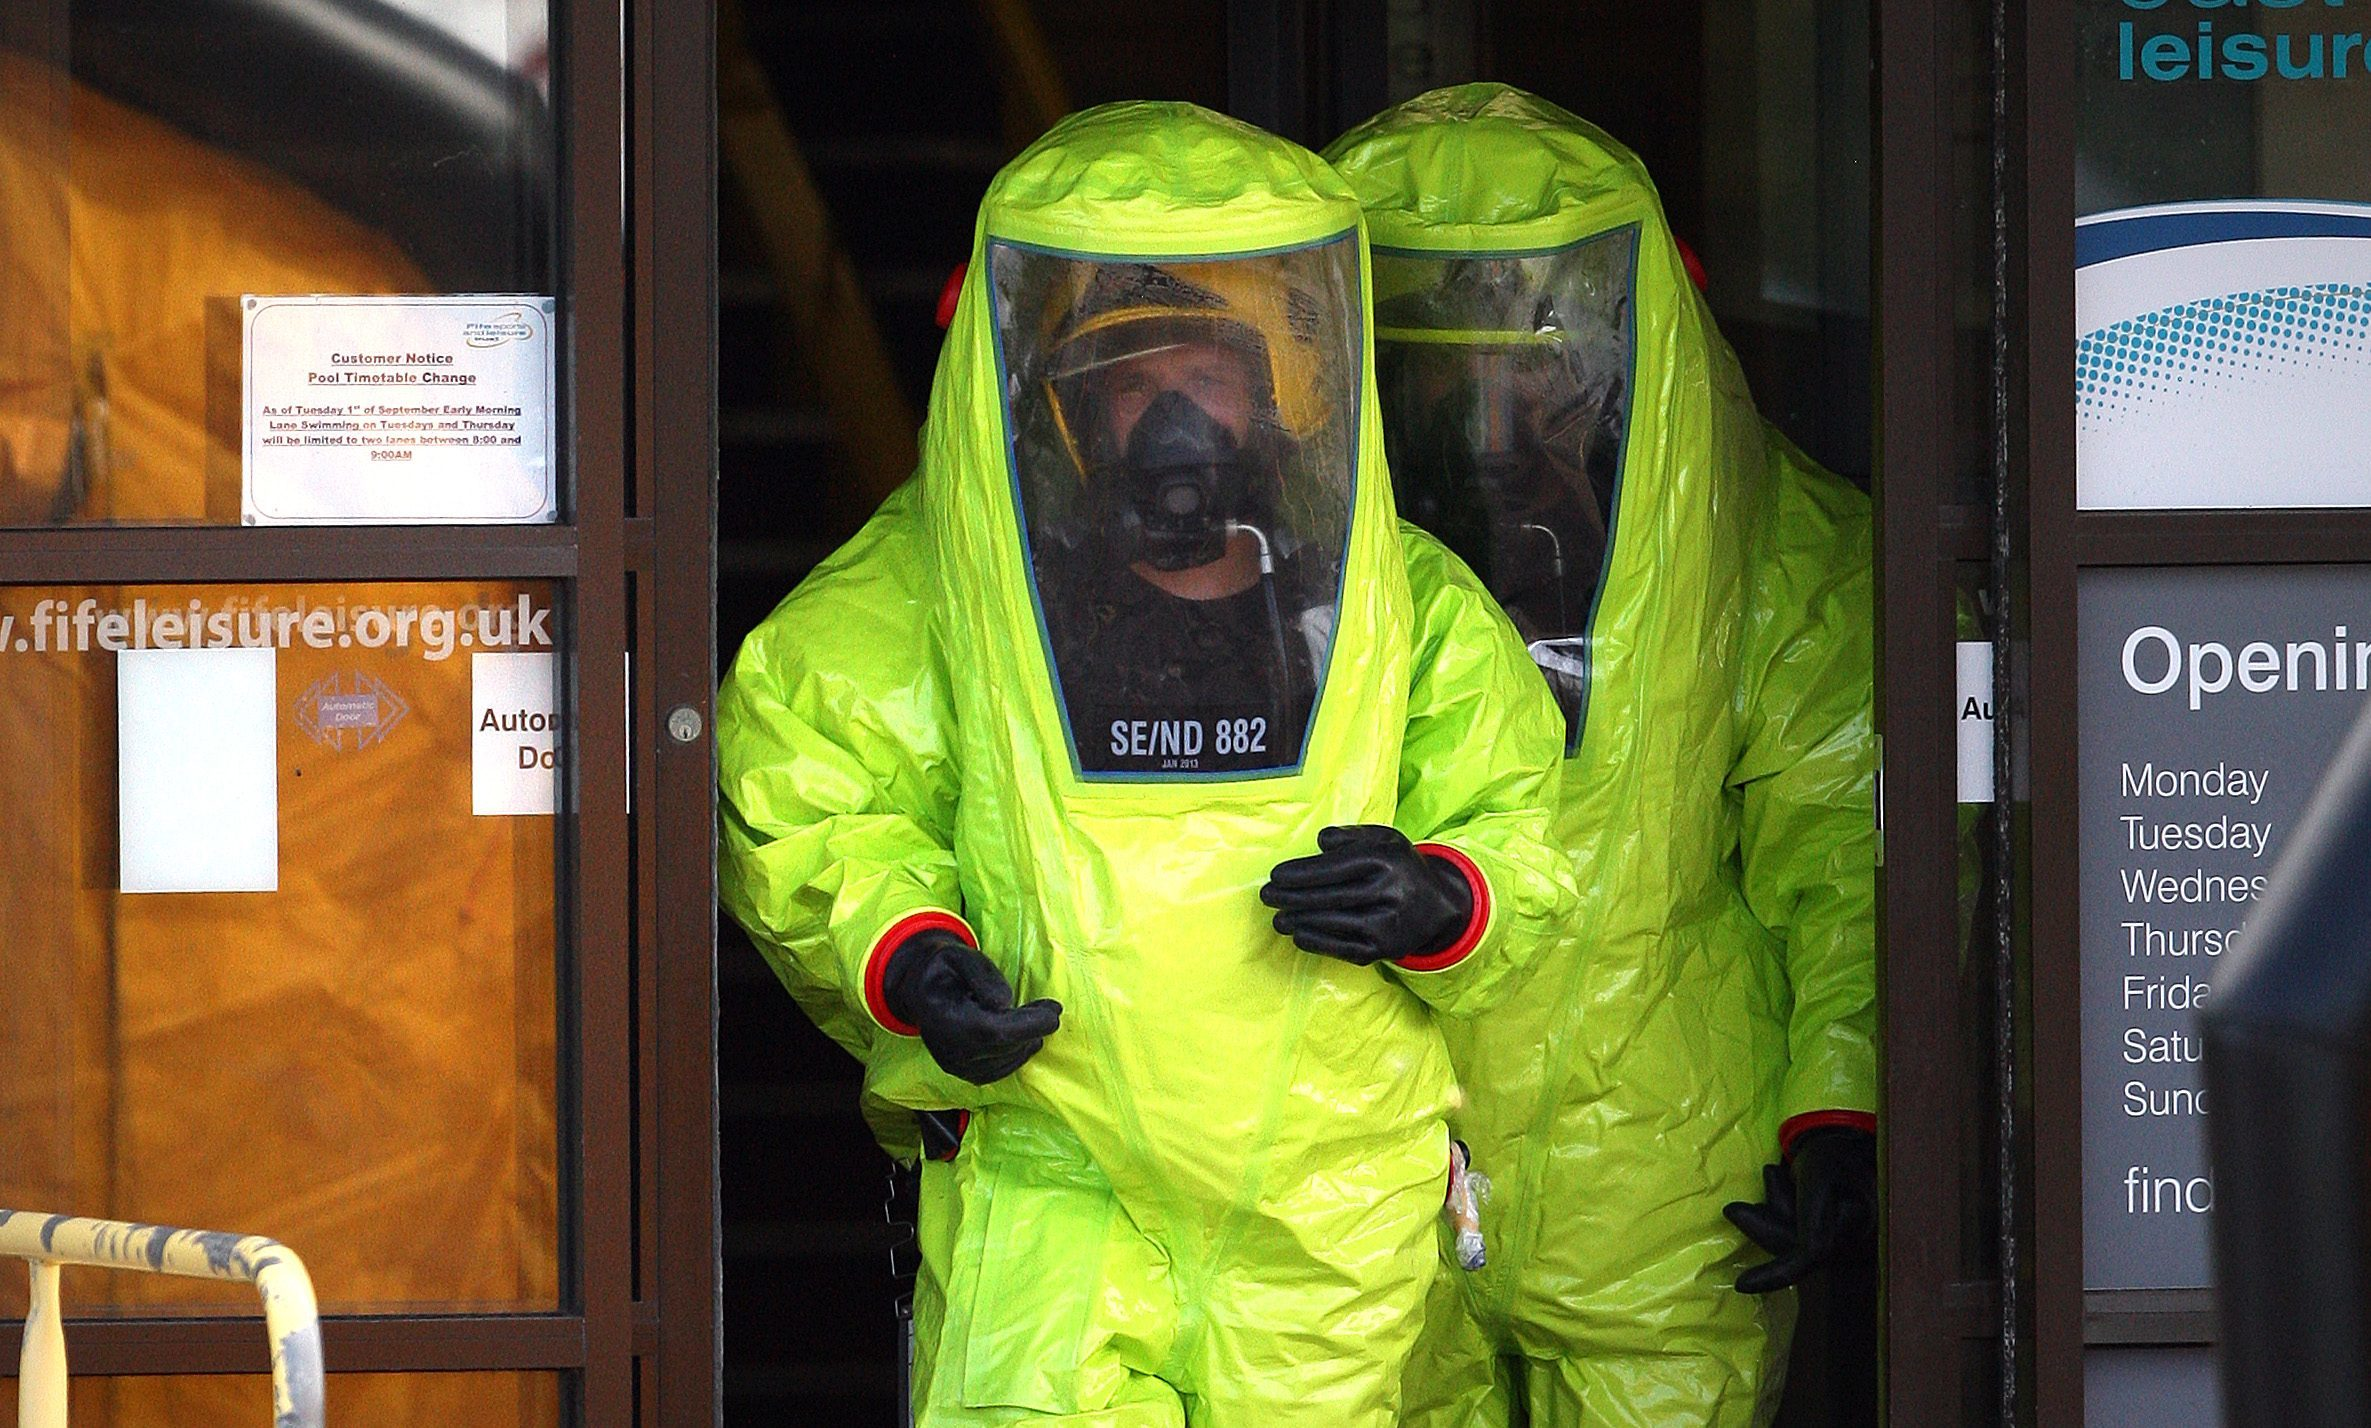 Firefighters in hazmat (hazardous material) suits leaving the leisure centre during the incident.